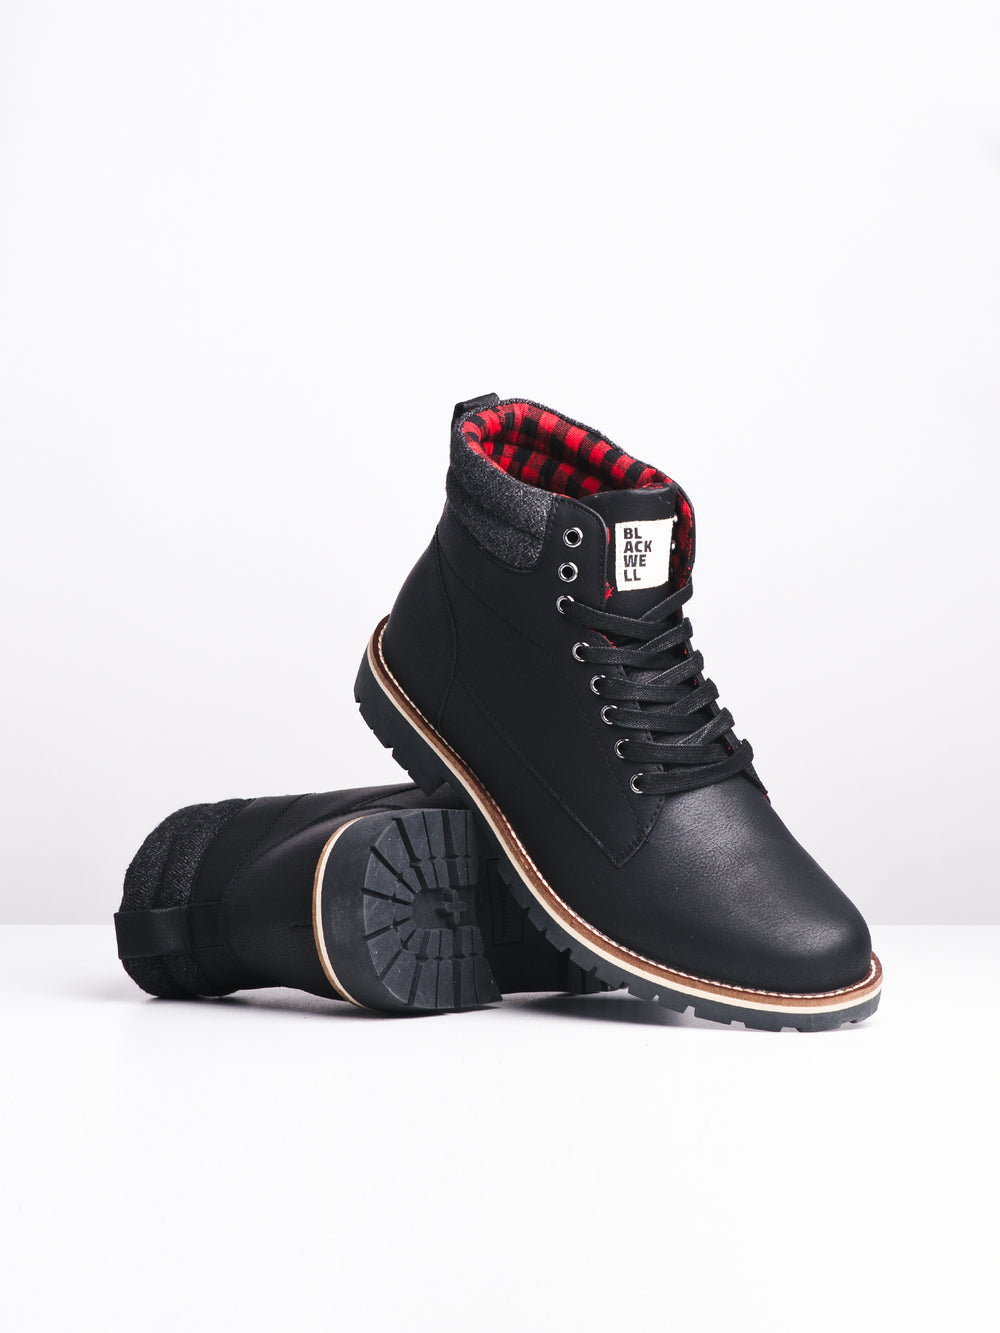 MENS KEAGAN - BLACK-D4B - CLEARANCE